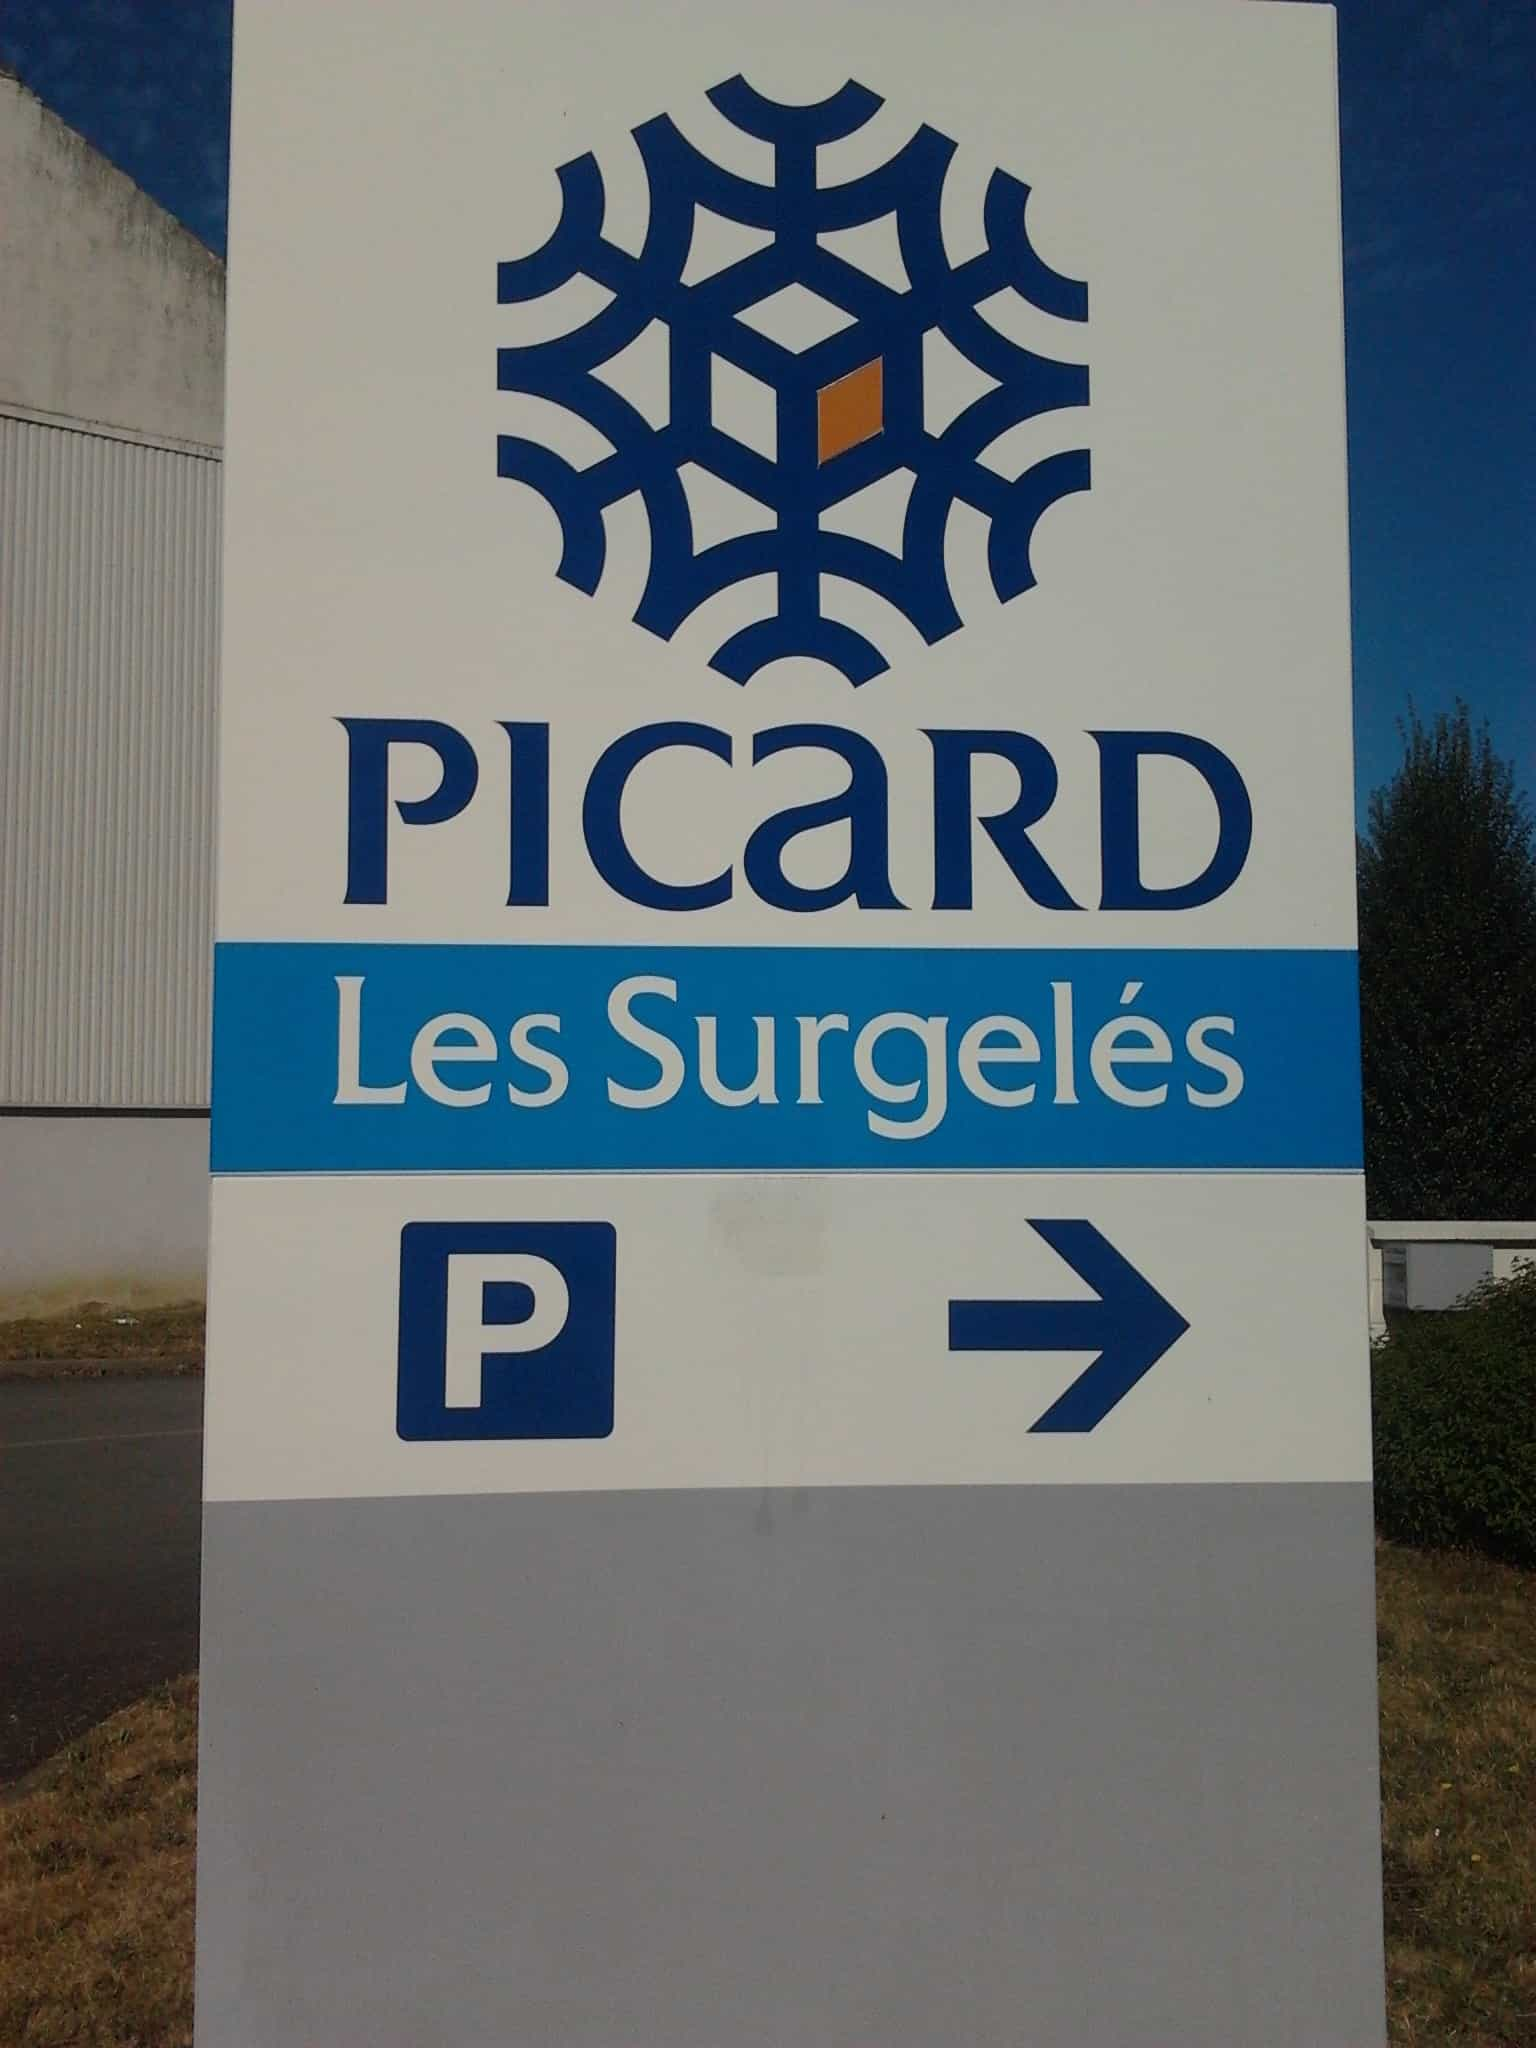 Picard food store